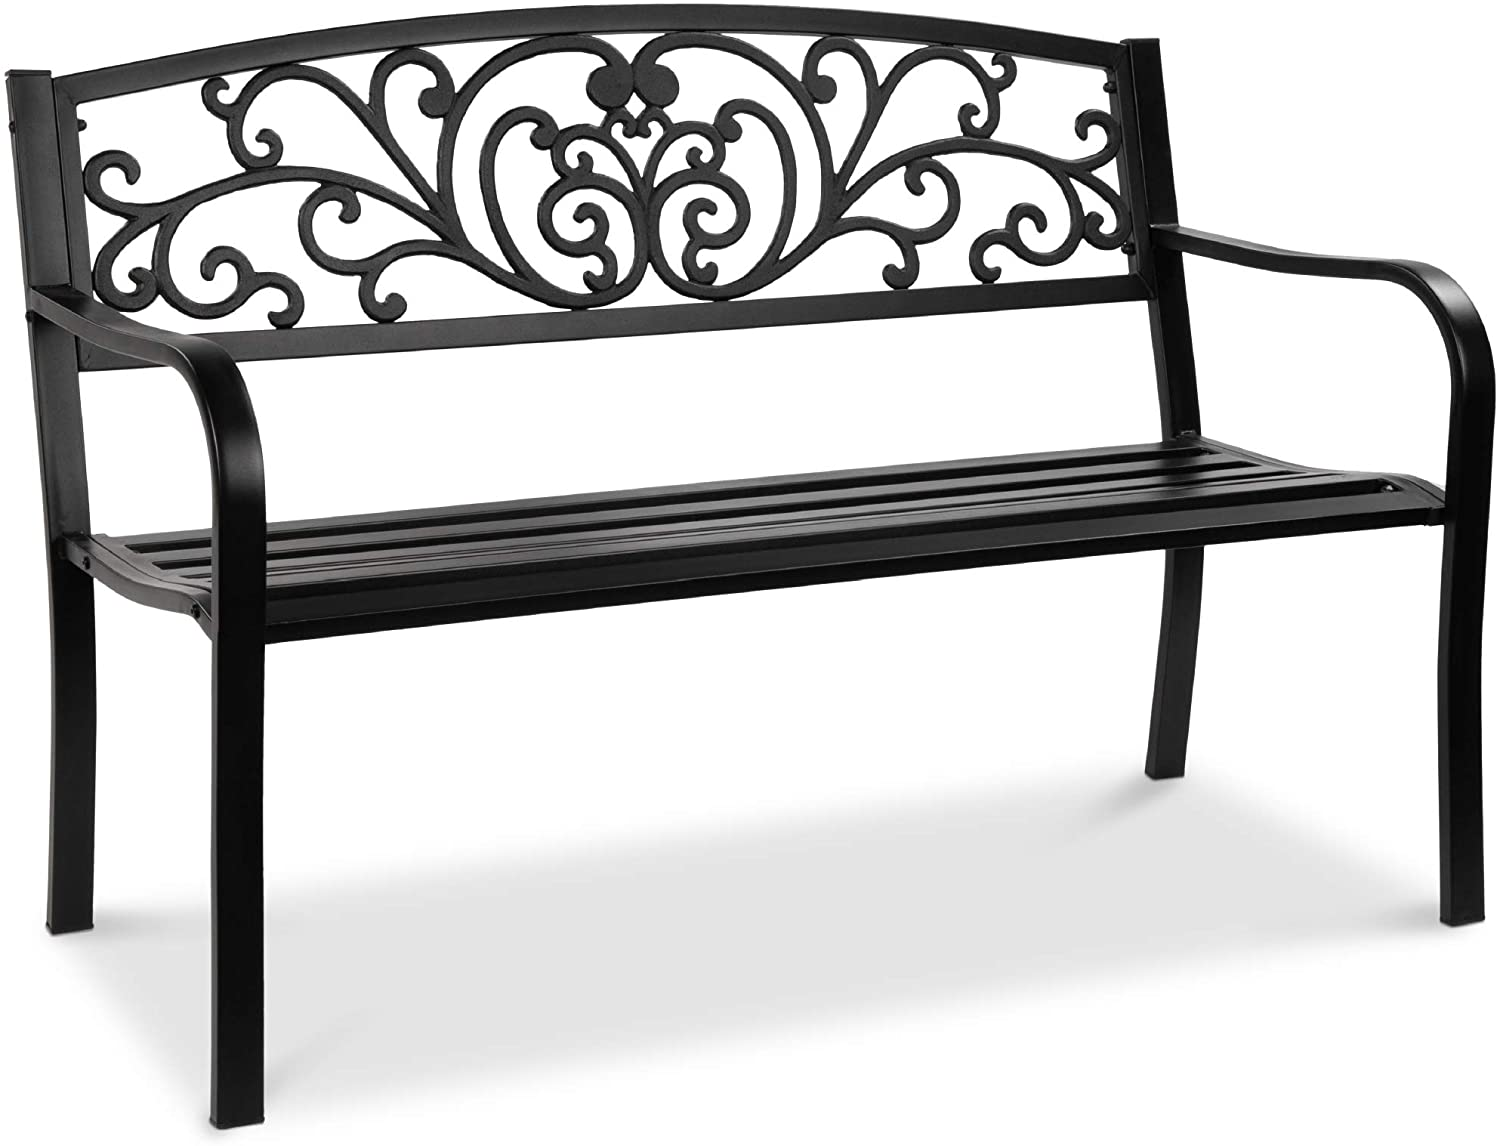 Best Choice Products 9in Steel Garden Bench for Outdoor, Park, Yard, Patio  Furniture Chair w/Floral Design Backrest, Slatted Seat - Black